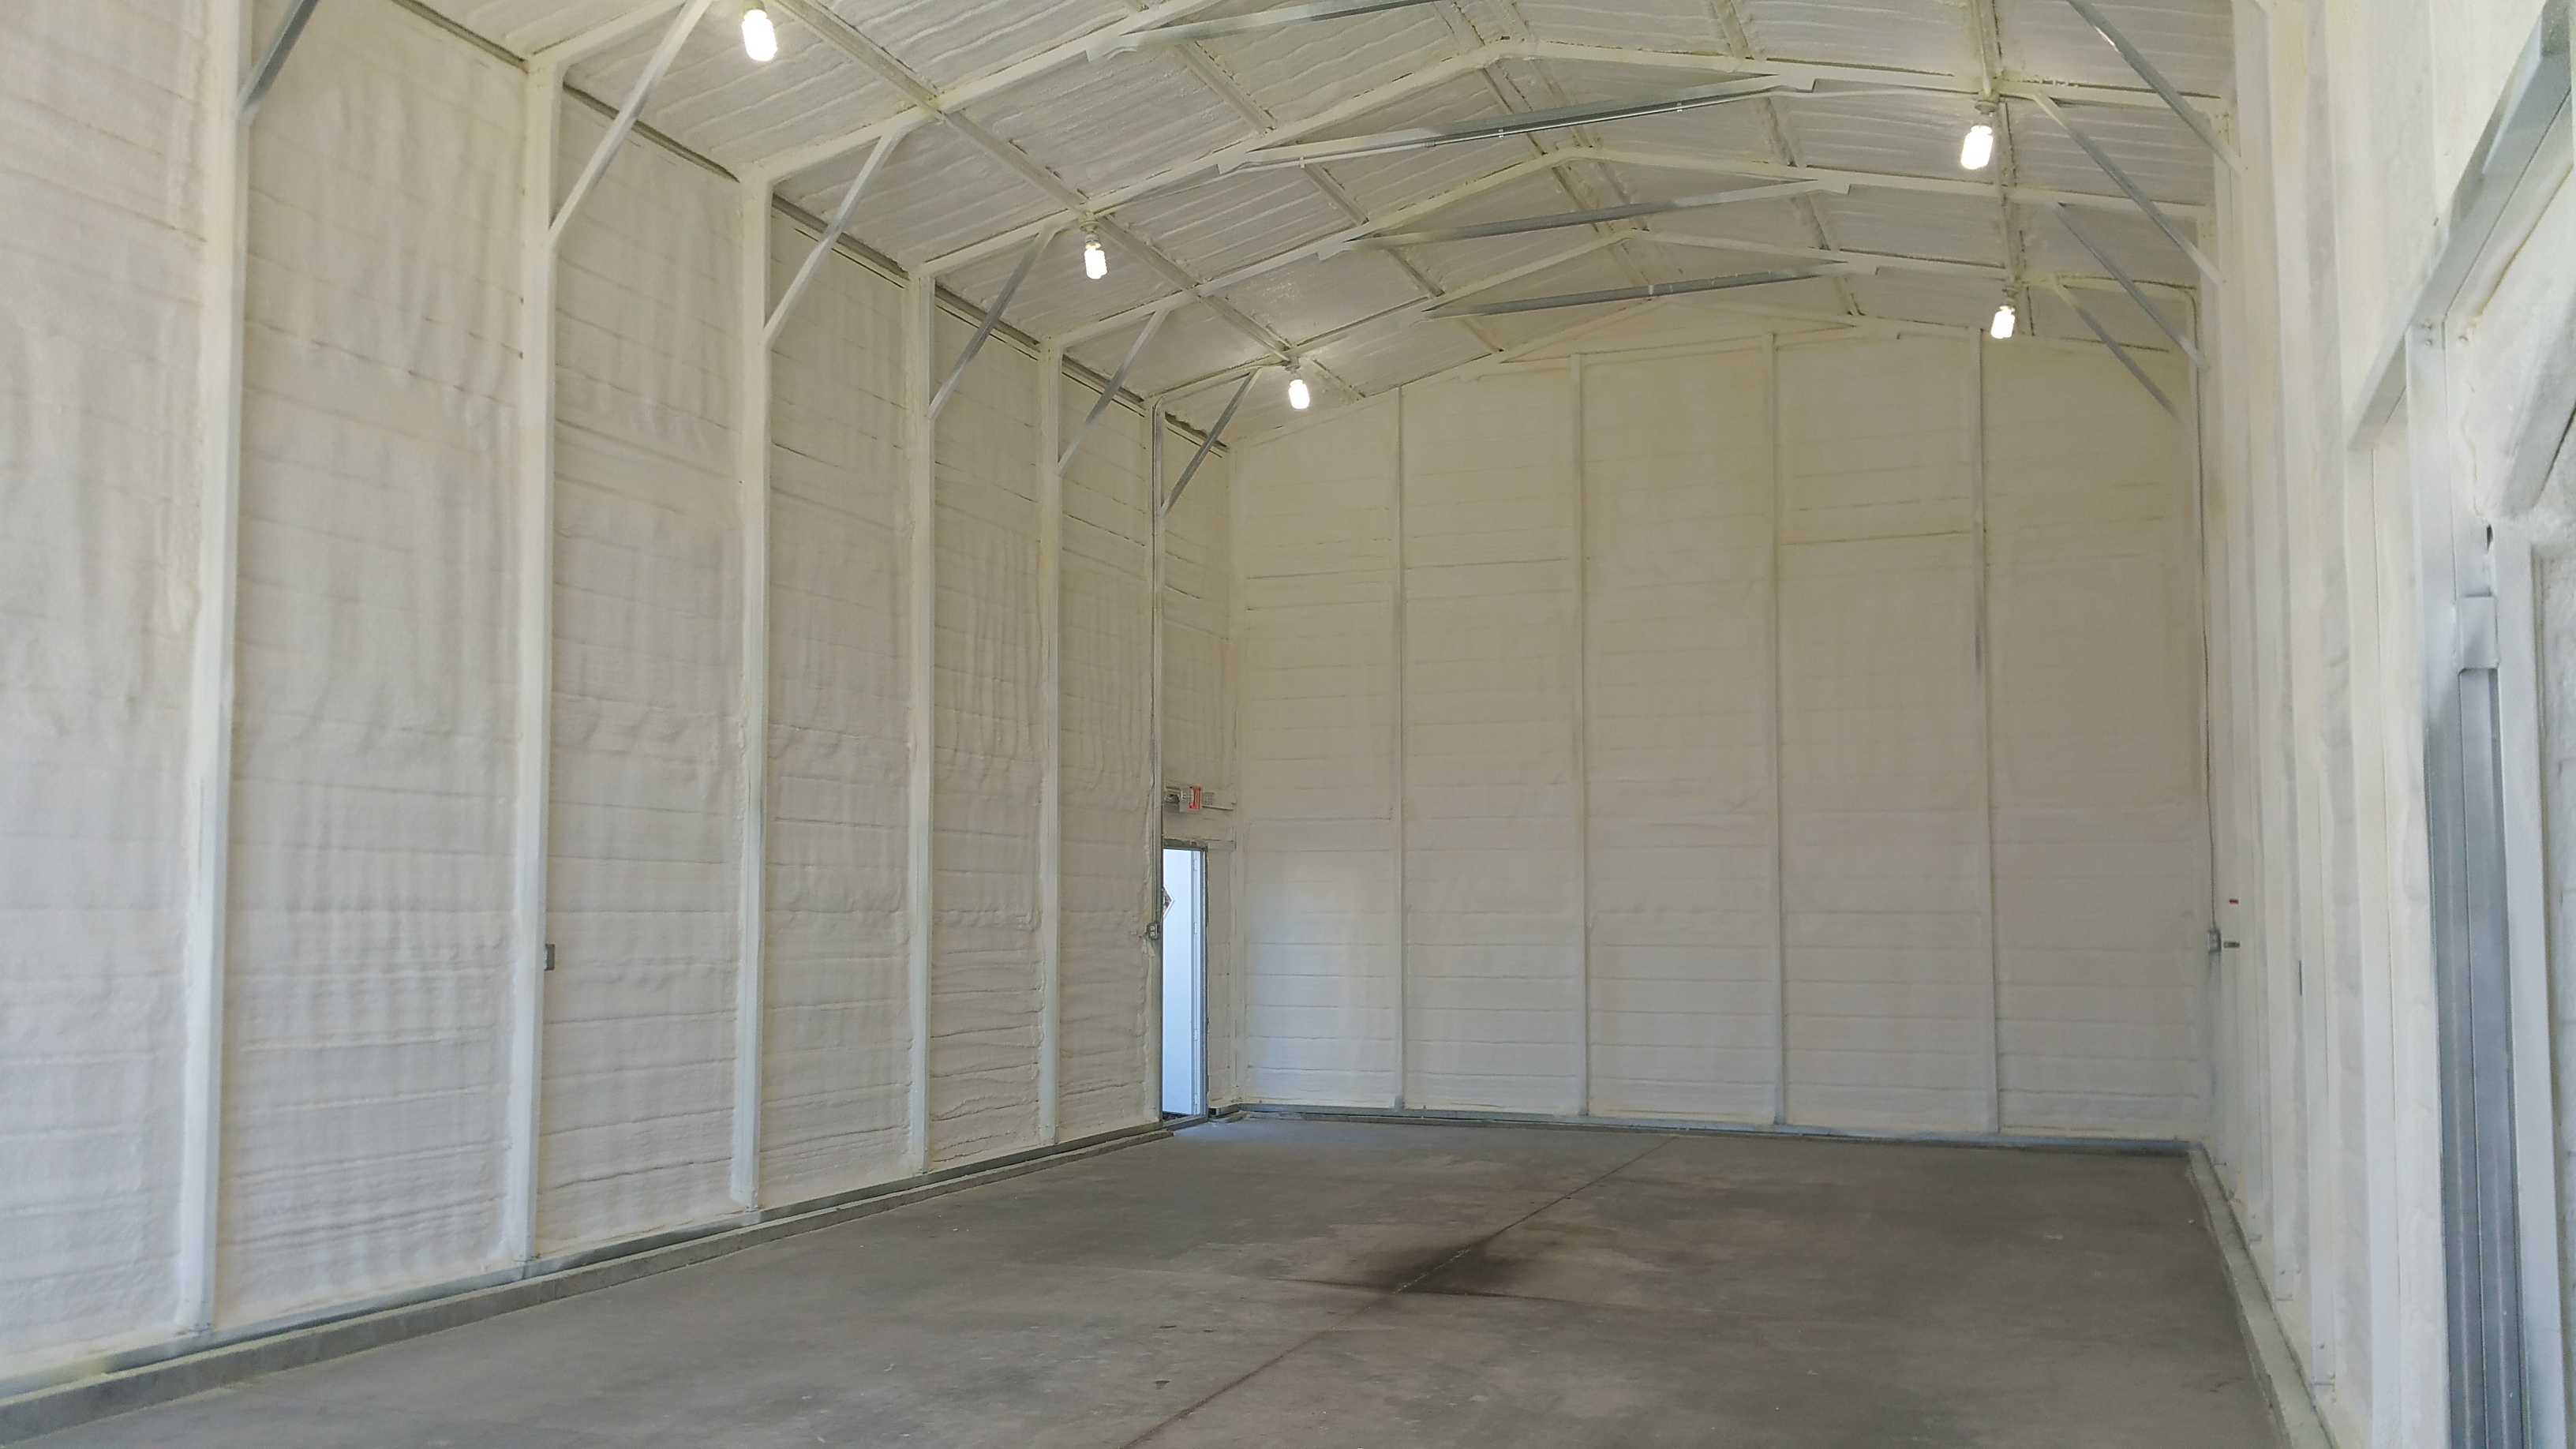 Closed Cell Spray Foam St Louis Mo 636 262 2856 314 323 1625 in measurements 3264 X 1836